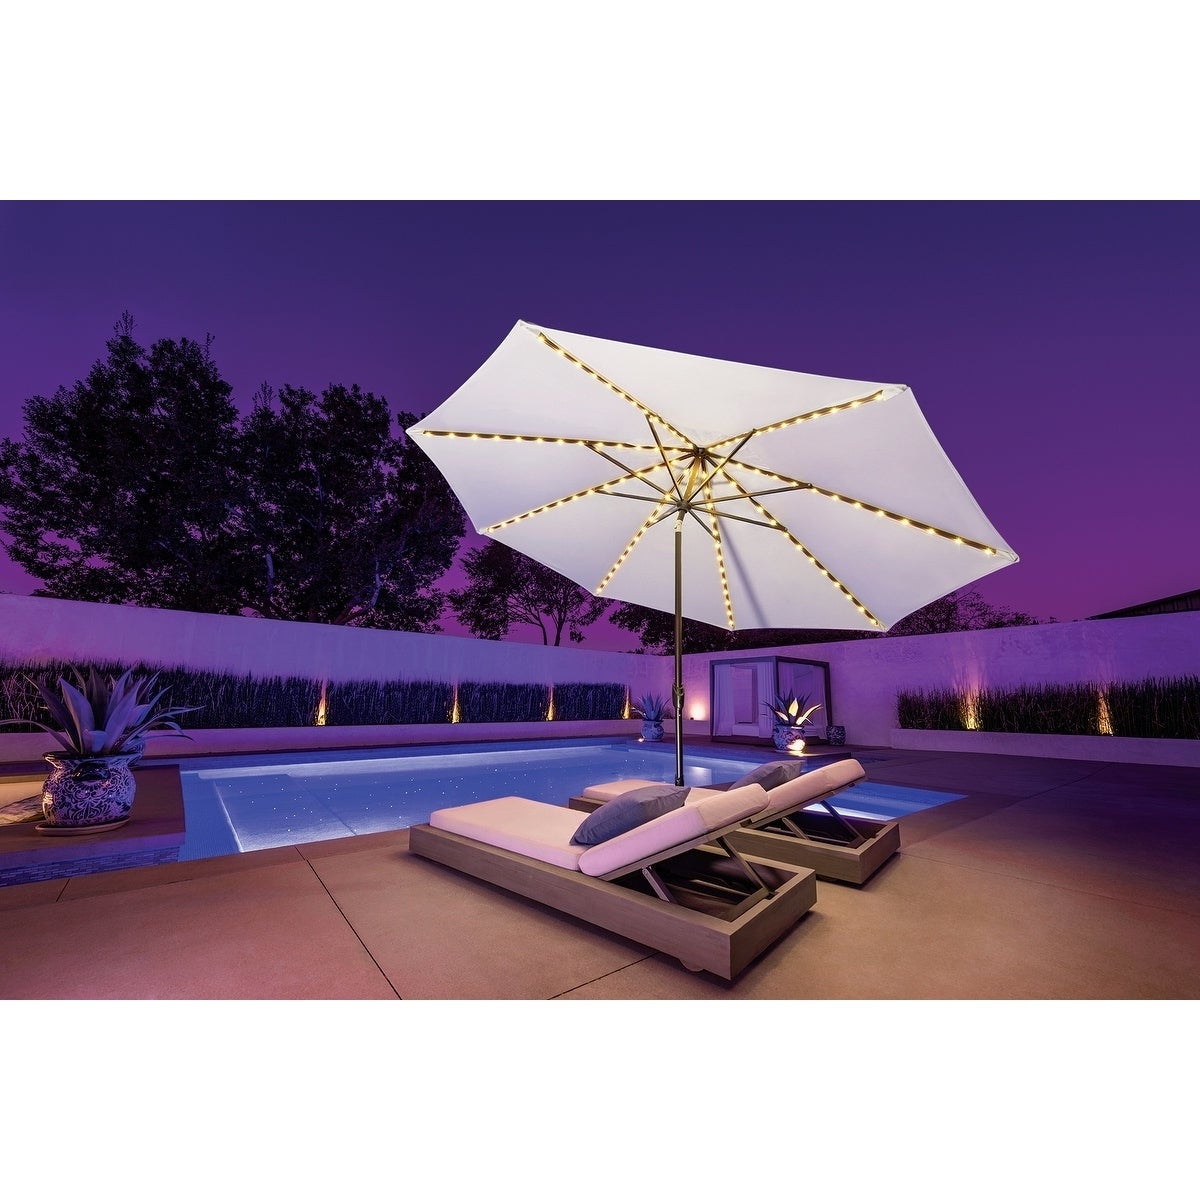 Lanai Market Umbrellas In Popular Simplyshade Lanai Pro 9' Octagon Auto Tilt Umbrella With Starlights (View 19 of 20)